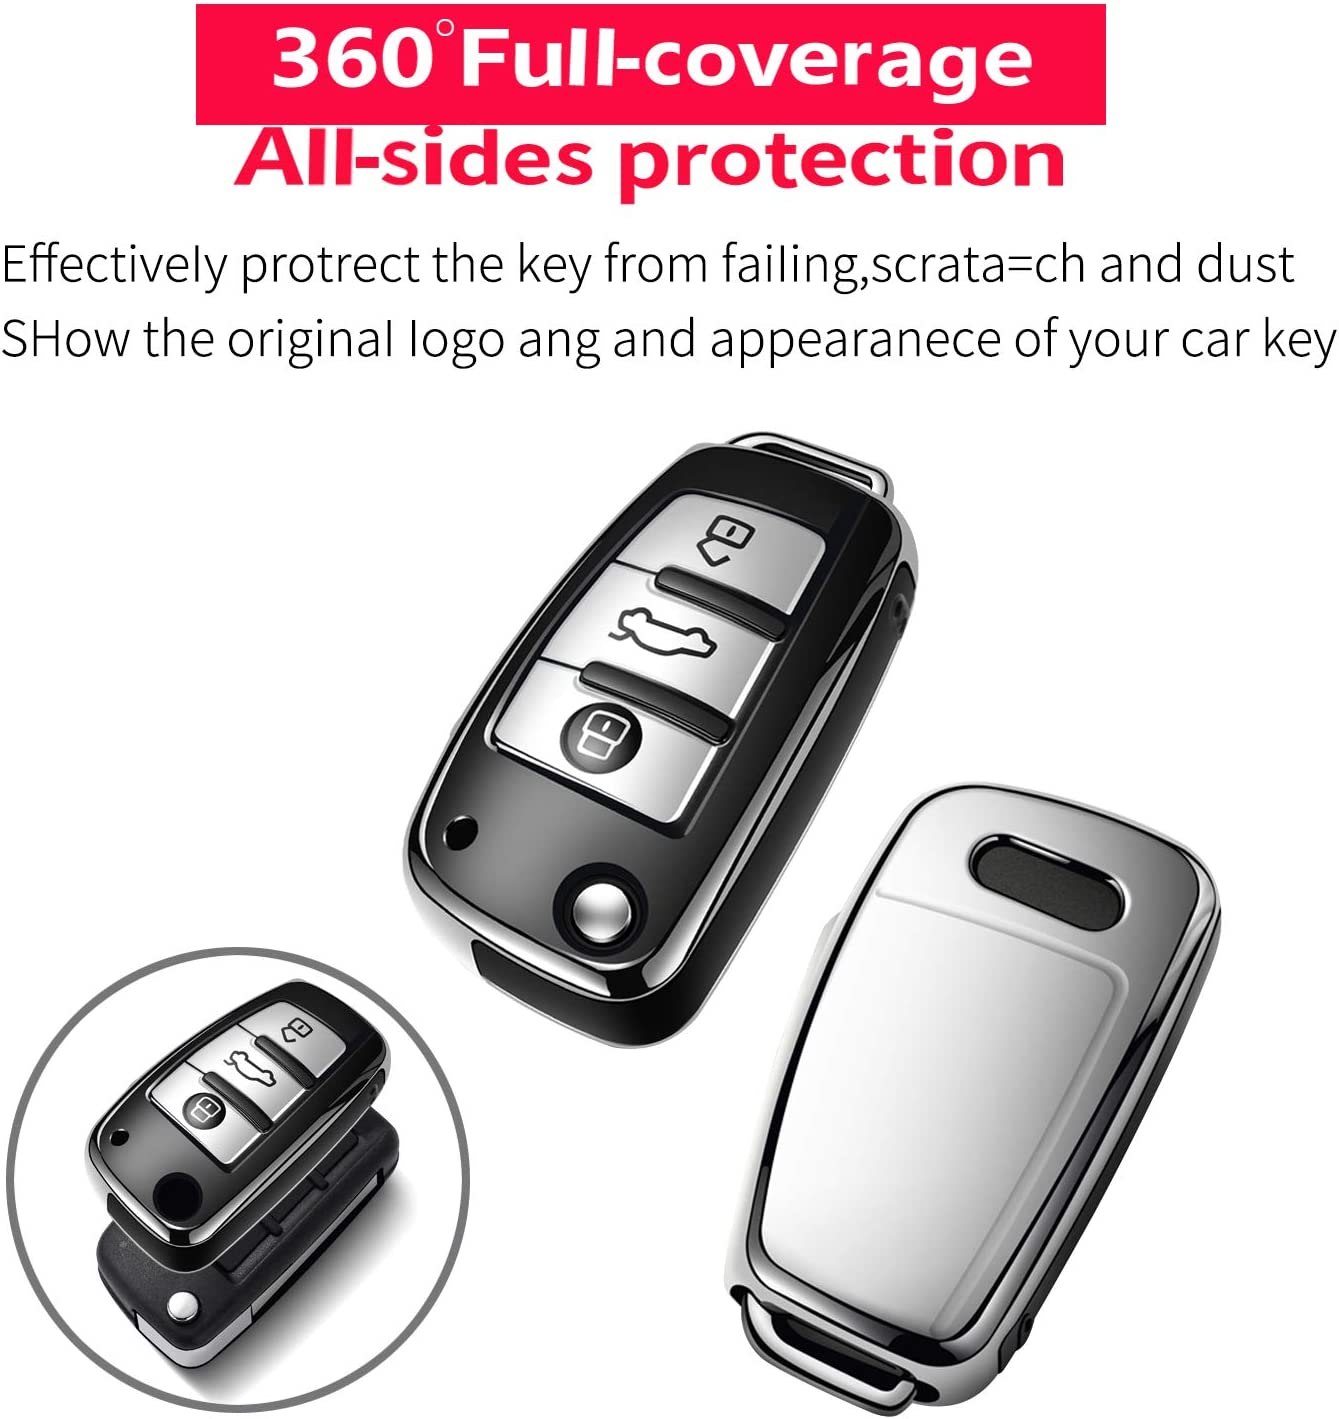 only for Flip Key 3 Buttons -Rose Gold Tukellen for Audi Key Fob Cover Case,Premium Soft TPU 360 Degree Full Protection Key Shell Key Case Cover Compatible with Audi A1 A3 Q3 Q7 R8 A6L TT